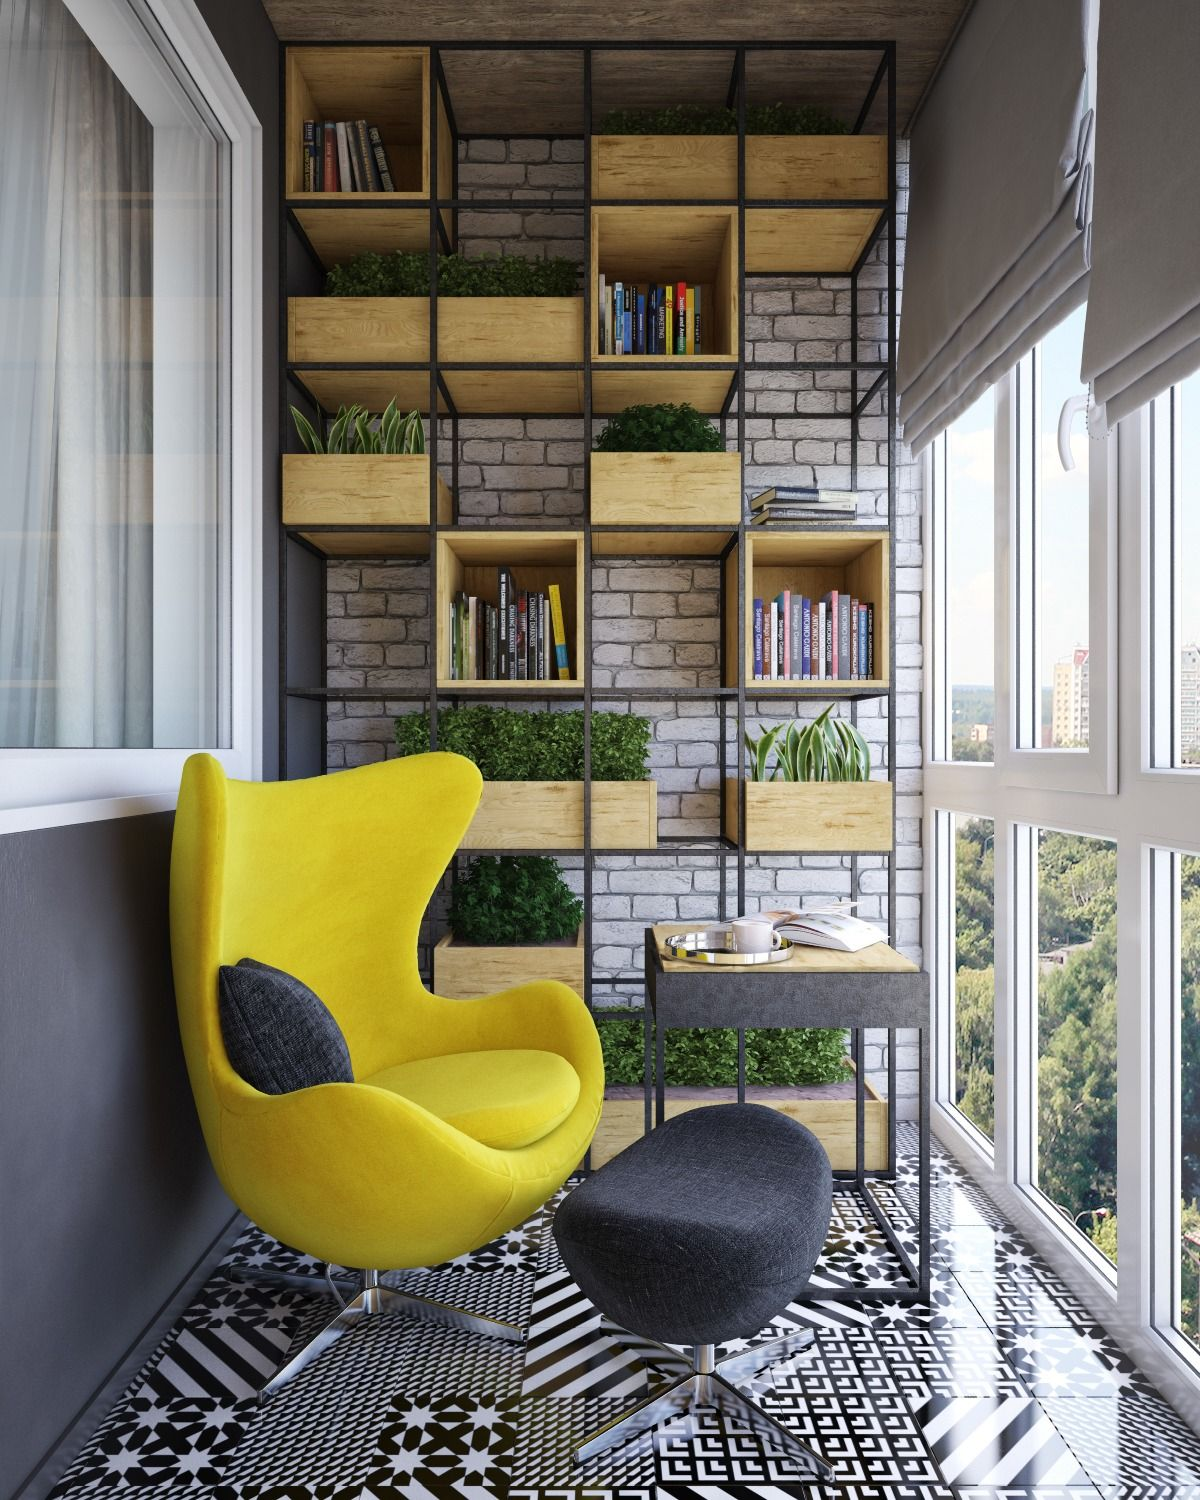 Contemporary canary colored accent chairs - 20 Creative Modern Ideas To Transform Small Balcony Designs Space Saving Decorating Ideas And Compact Outdoor Furniture For Small Balcony Designs